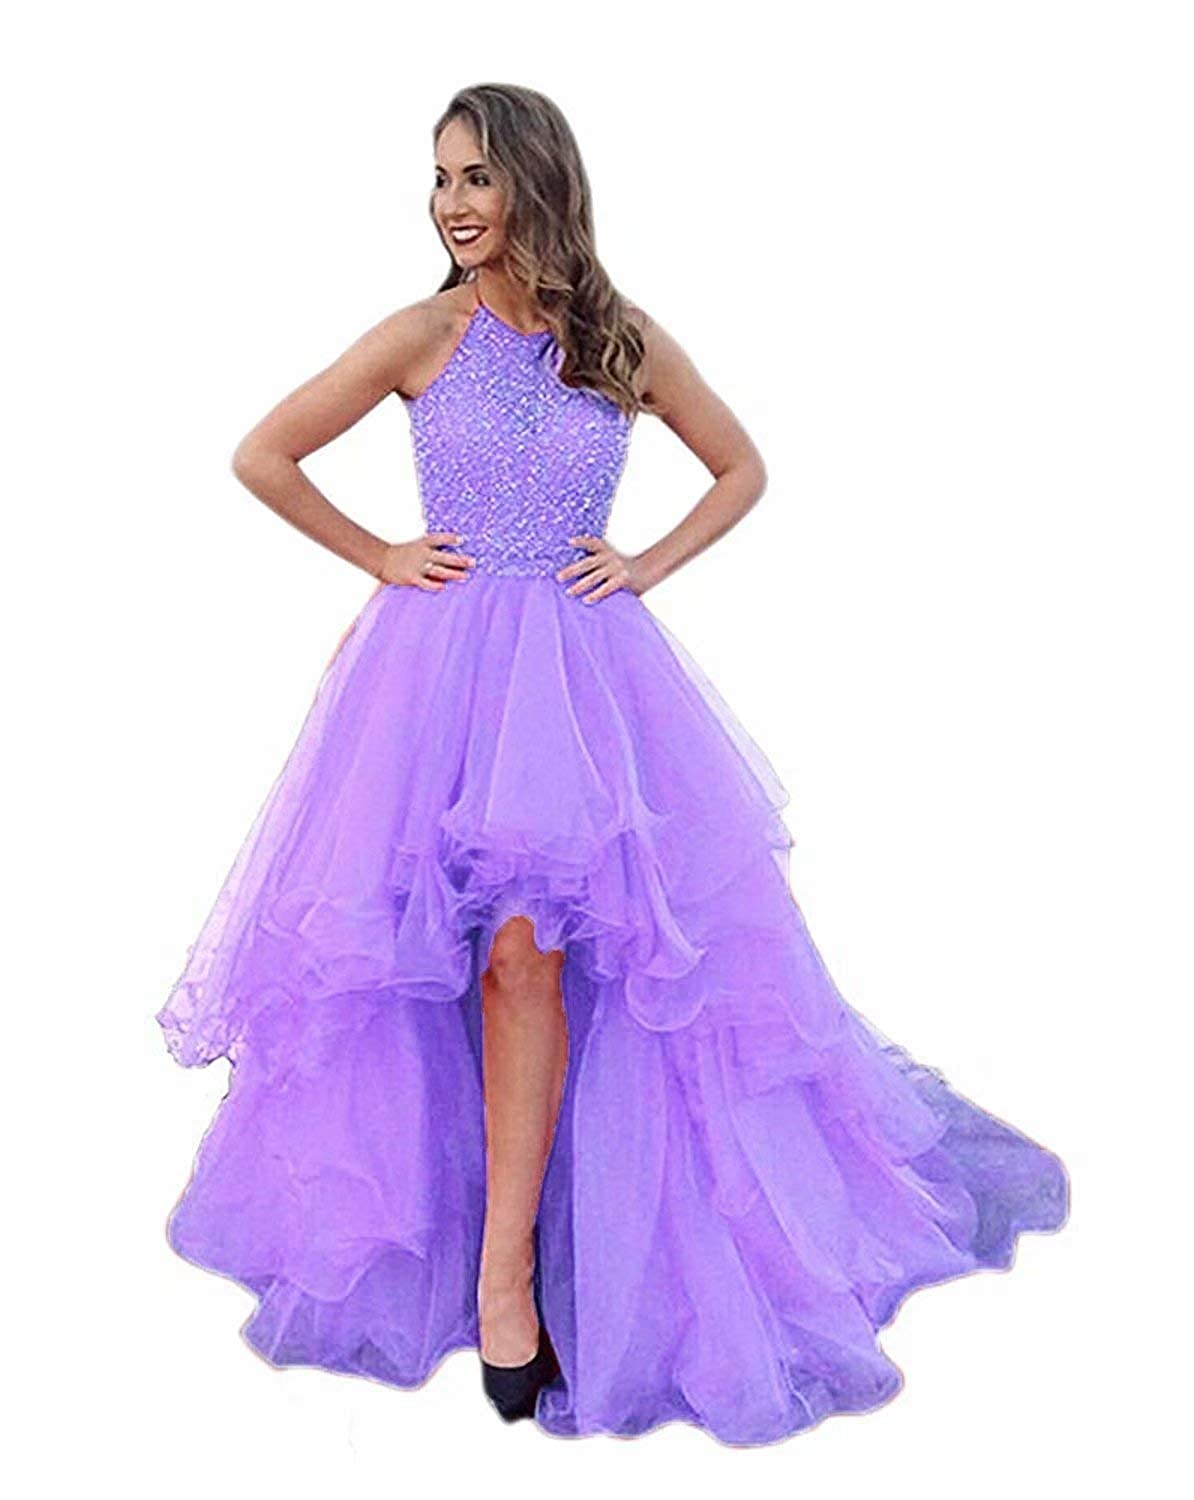 Lavender EEFZL Women's High Low Beading Organza Prom Dresses Sequined Halter Evening Ball Gown